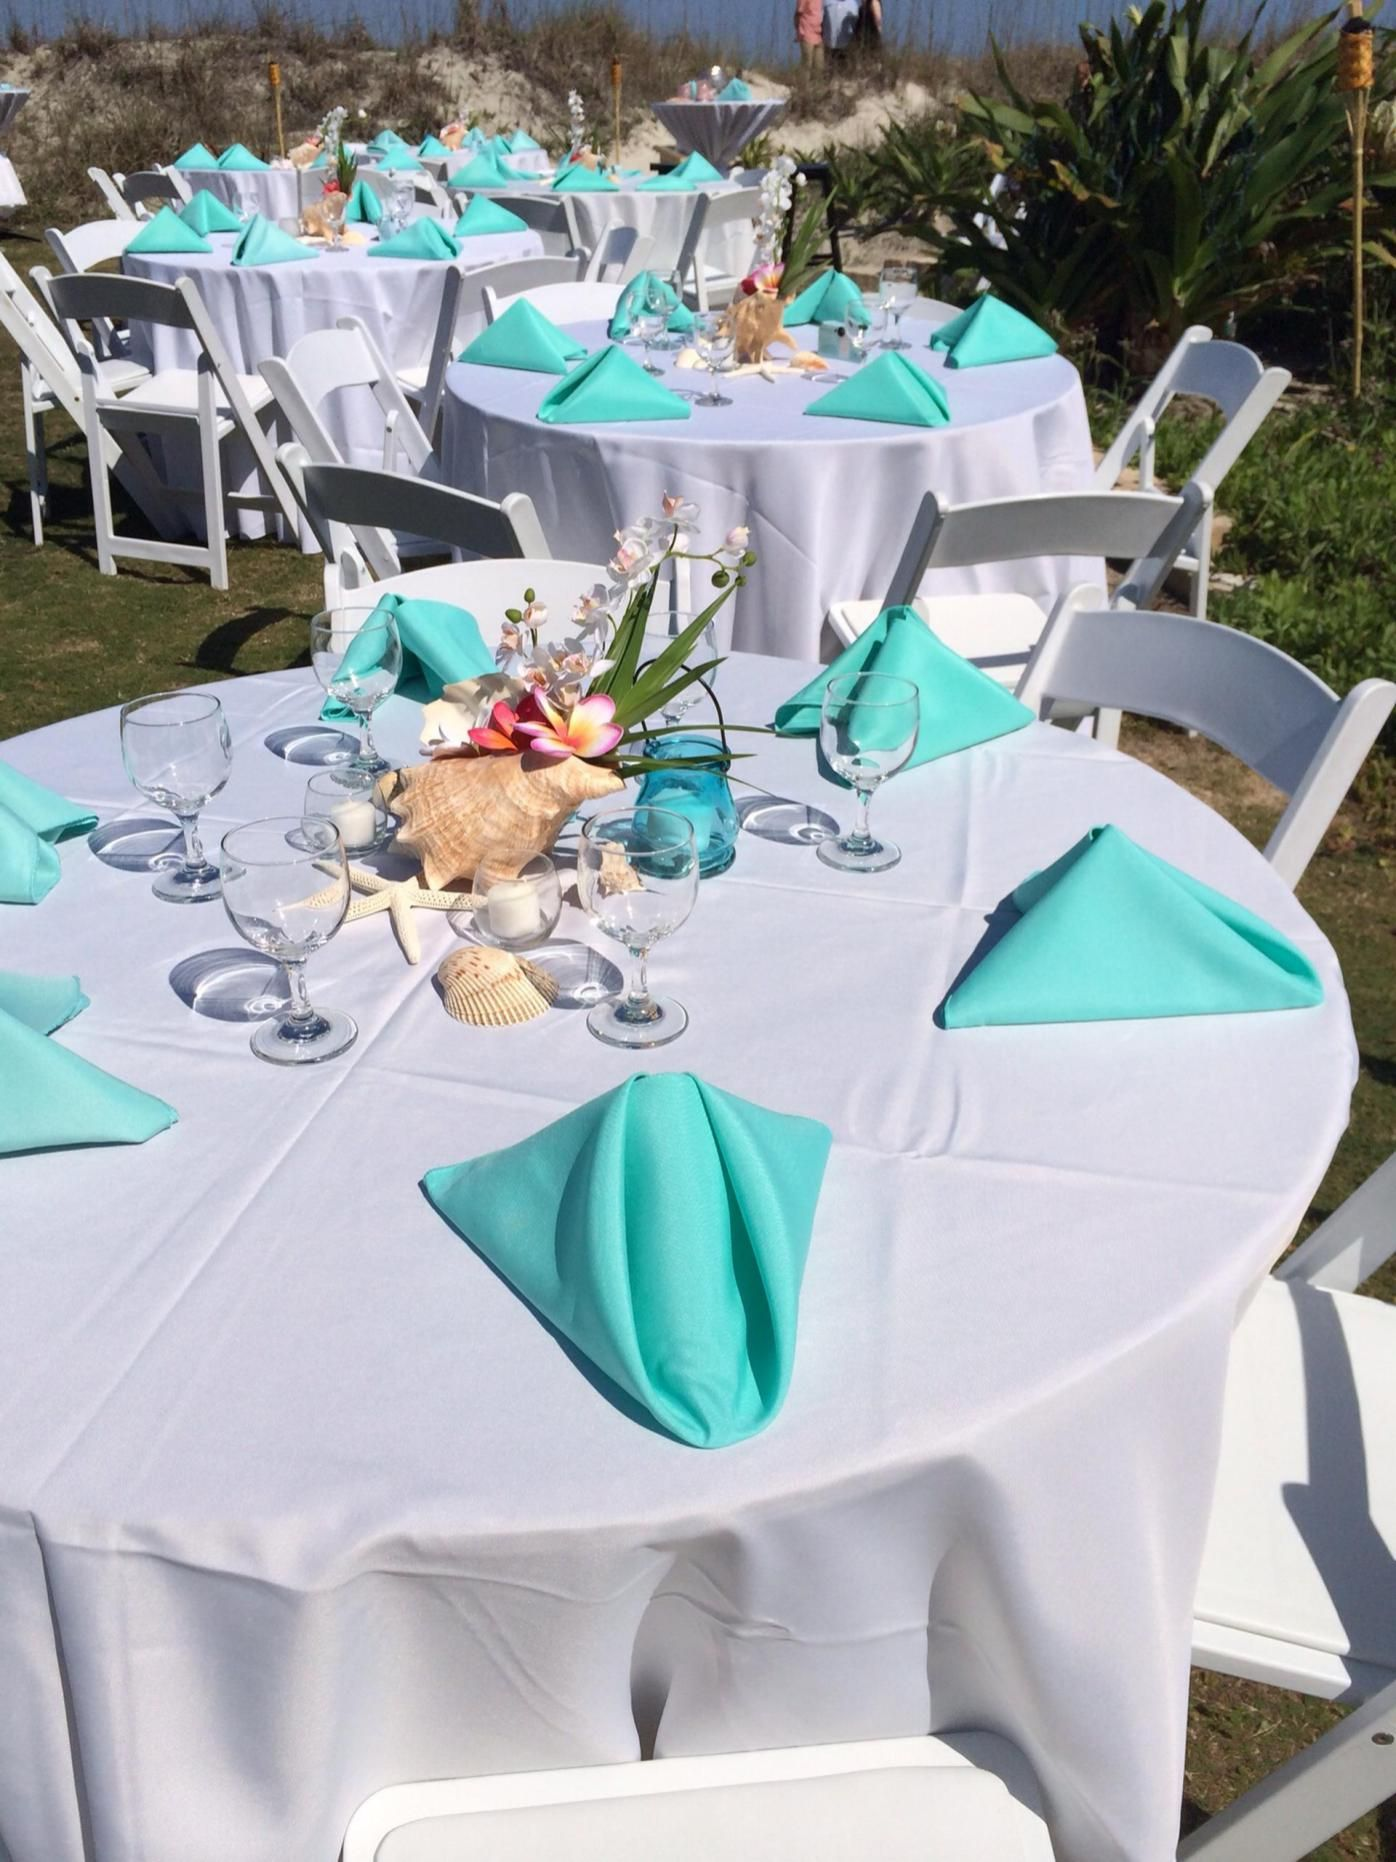 Wedding decorations for reception december 2018  Amazing Tropical Themed Wedding Decorations in   Til death